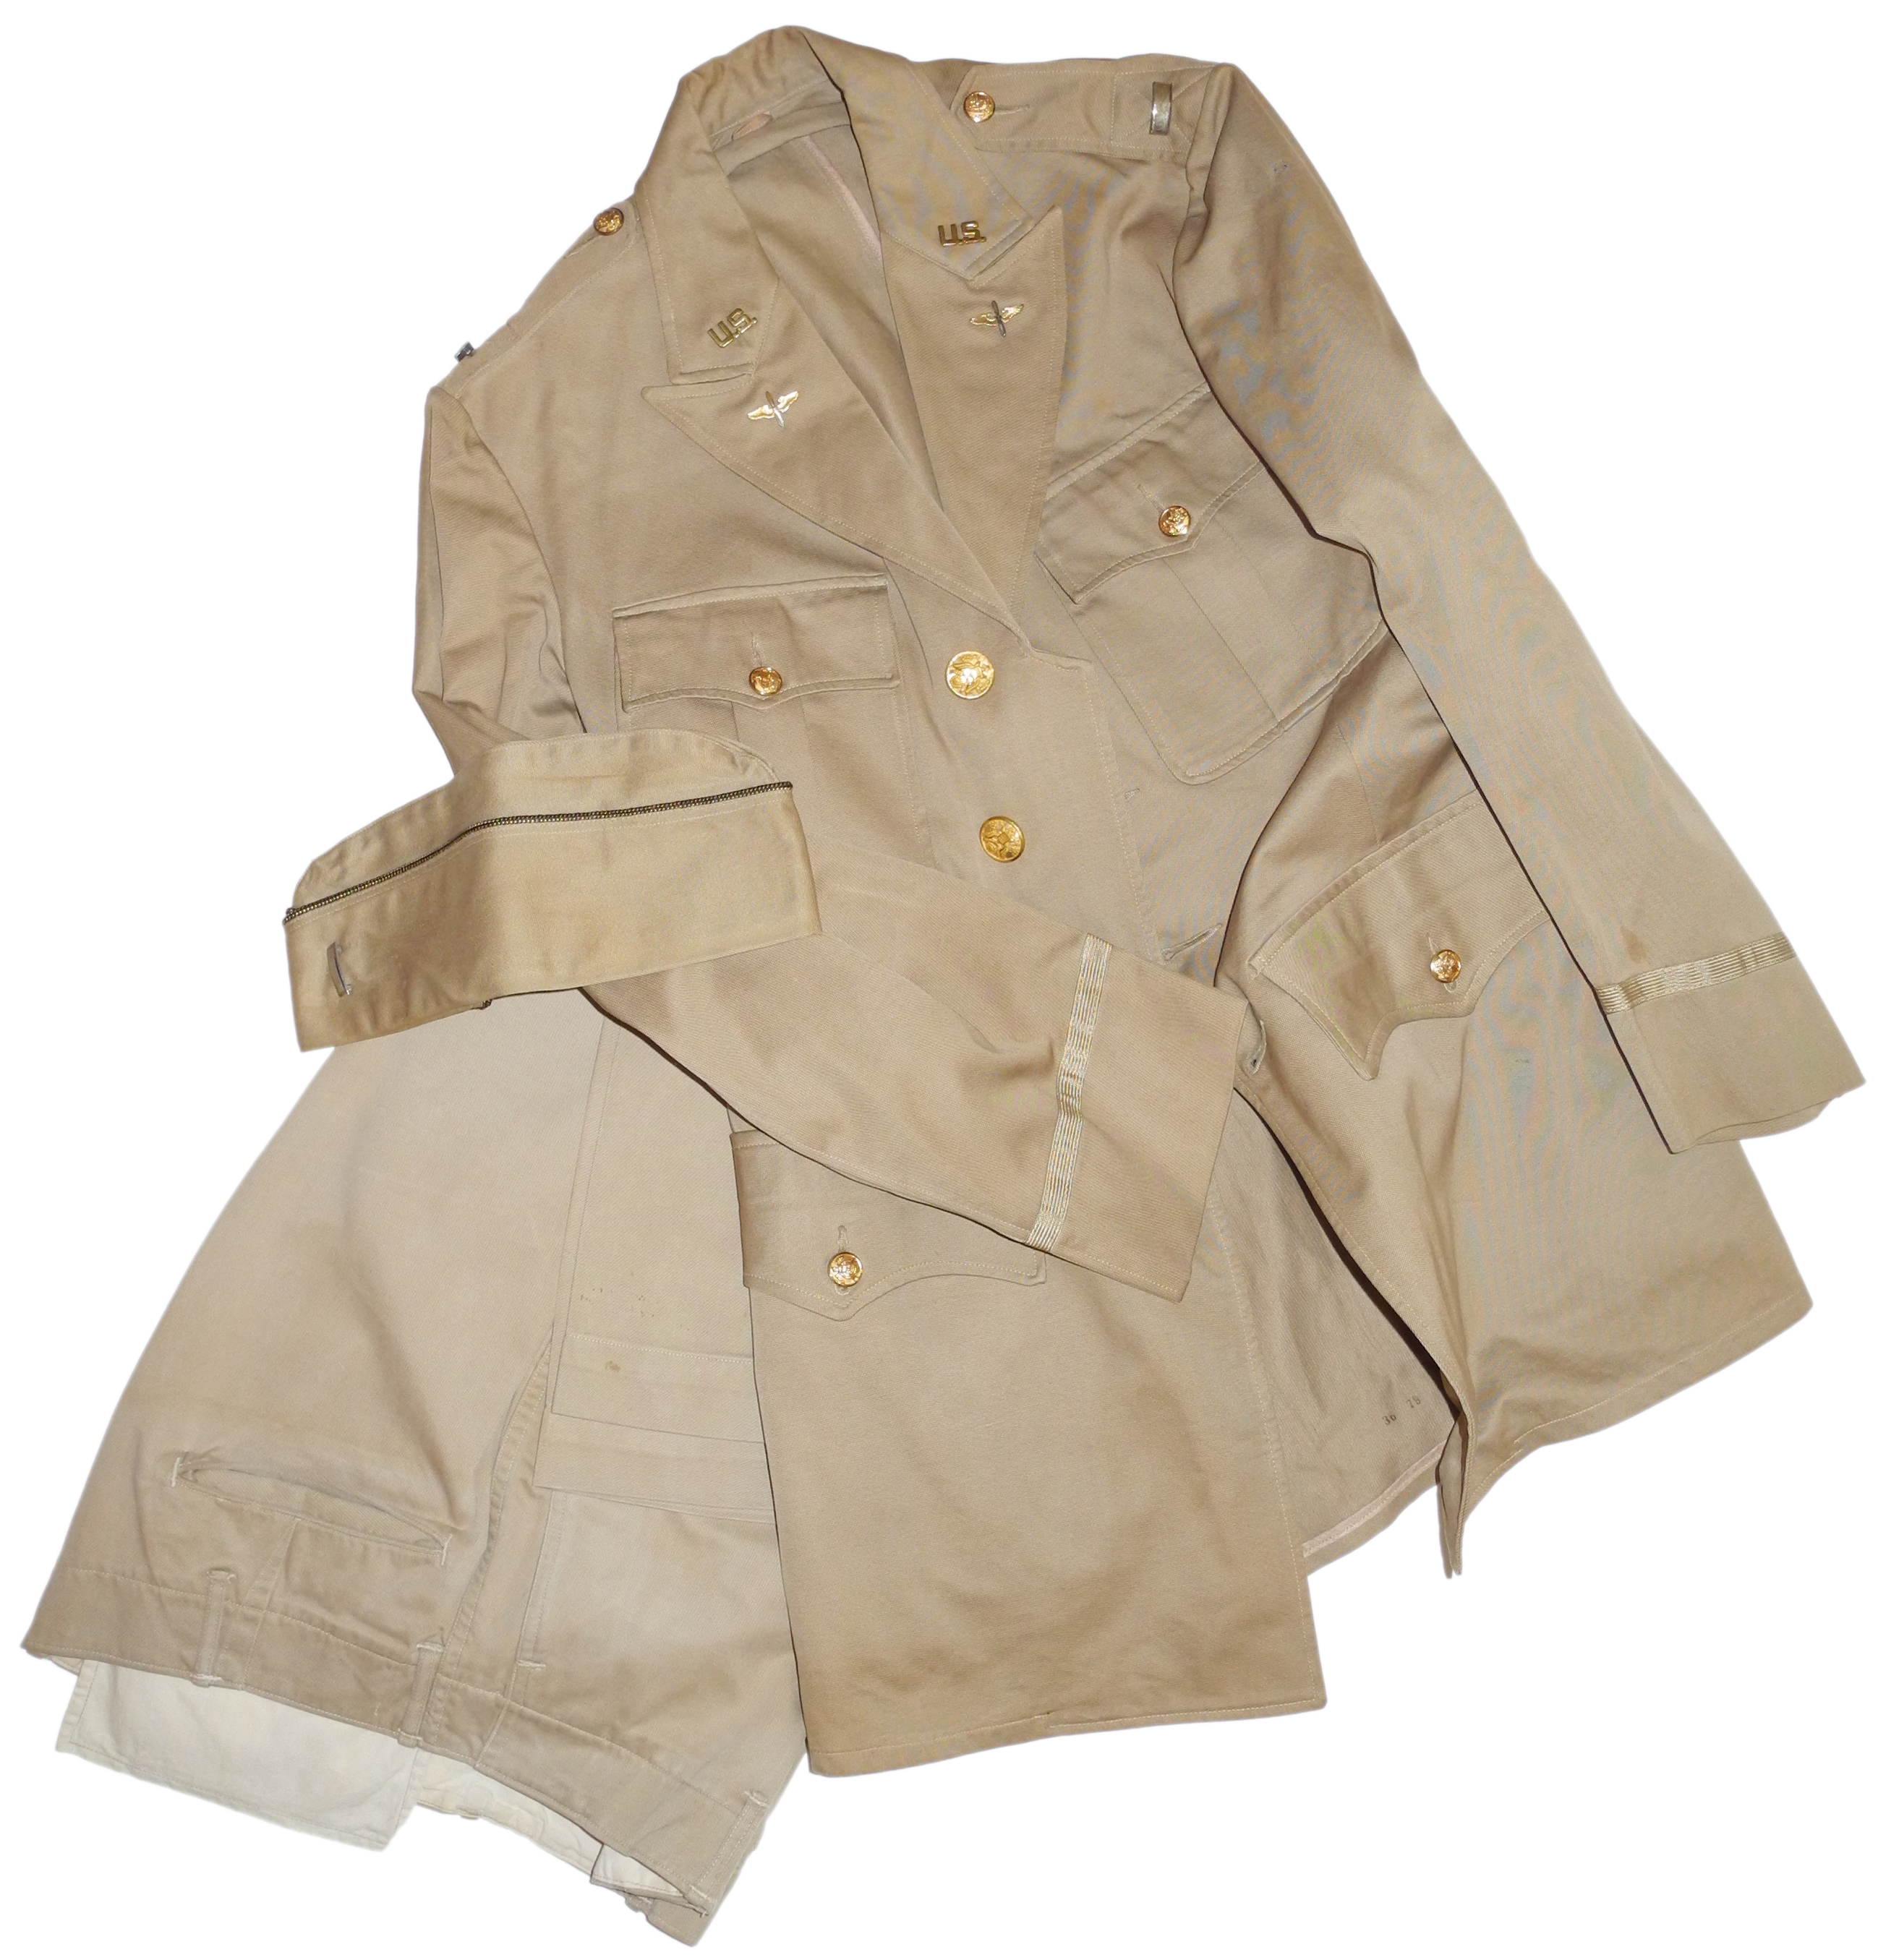 Complete AAF summer uniform: sidecap, 4-pocket tunic and trousers